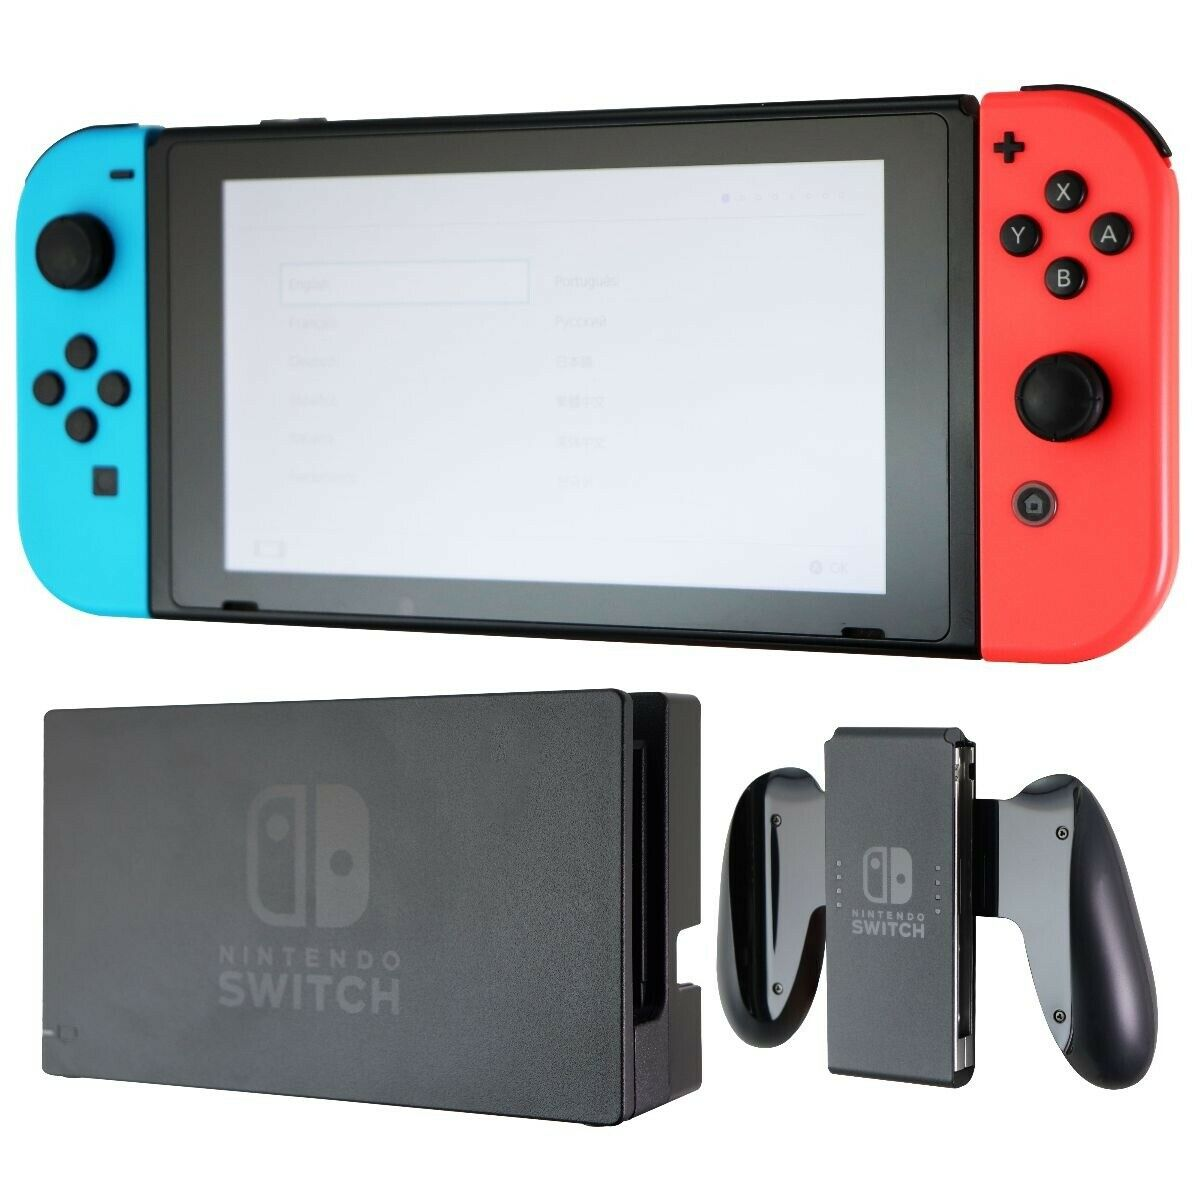 Nintendo Switch Game Console Bundle with Joy-Cons (Updated HAC-001(-01) Model)